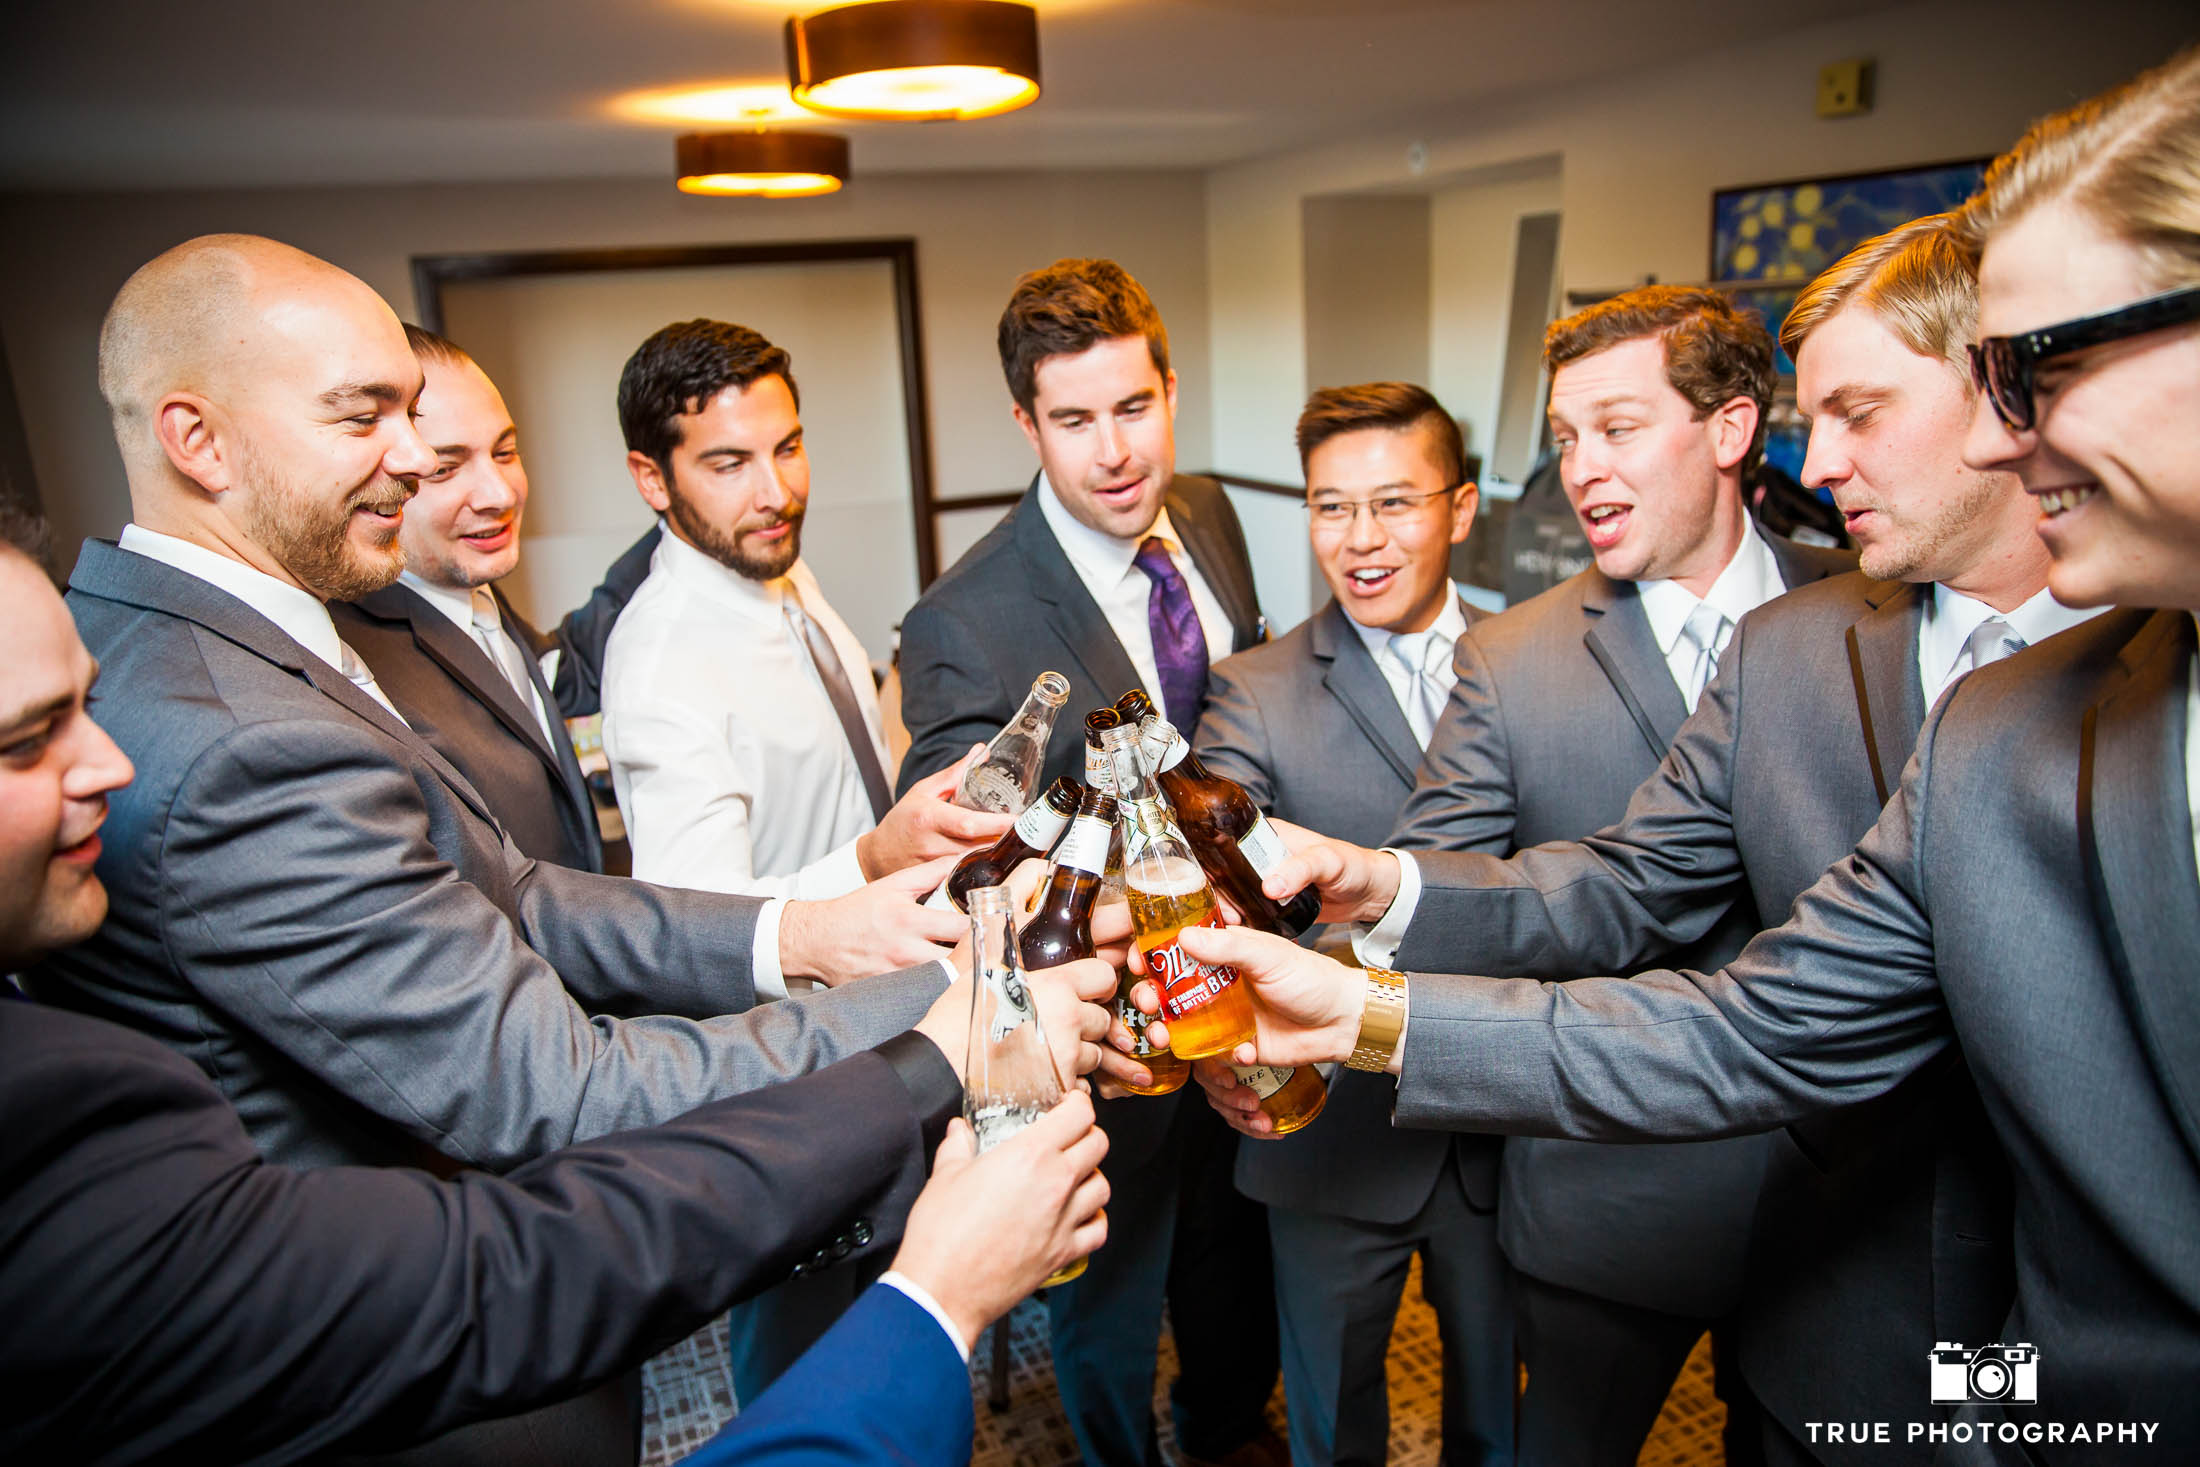 Groomsmen relax and cheers for a beer